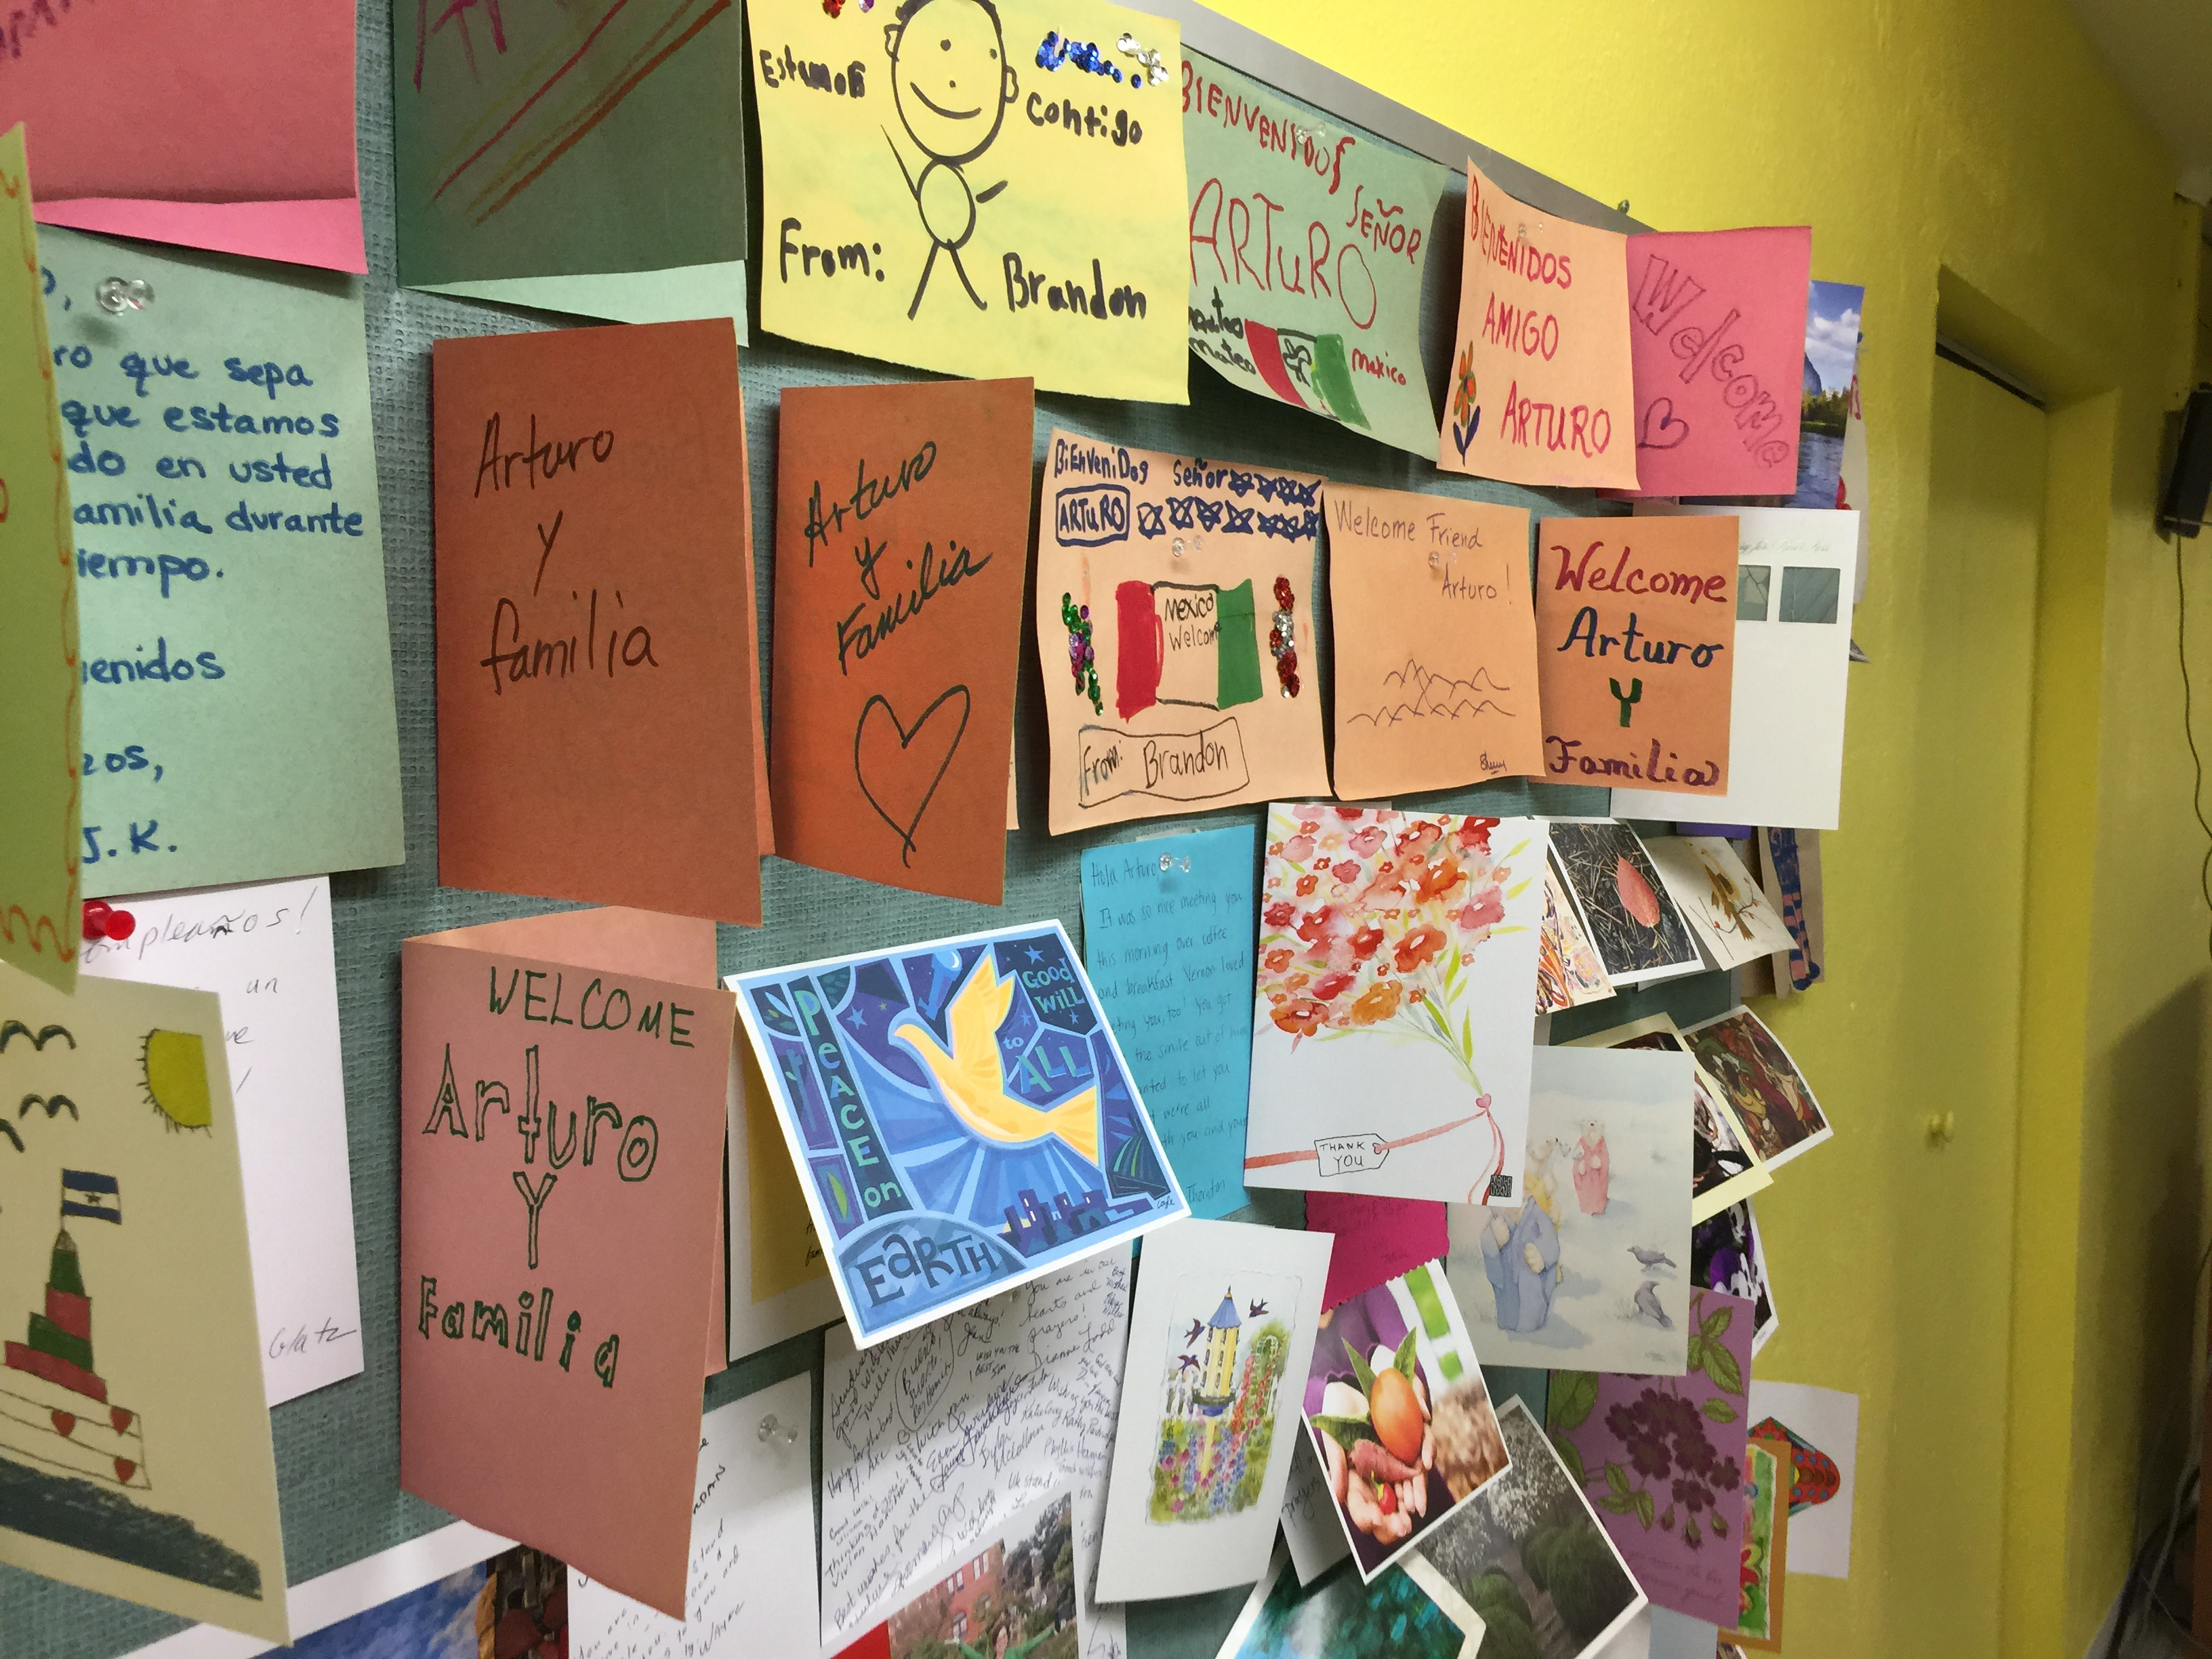 Photo: Cards on wall for Arturo Sanctuary feature